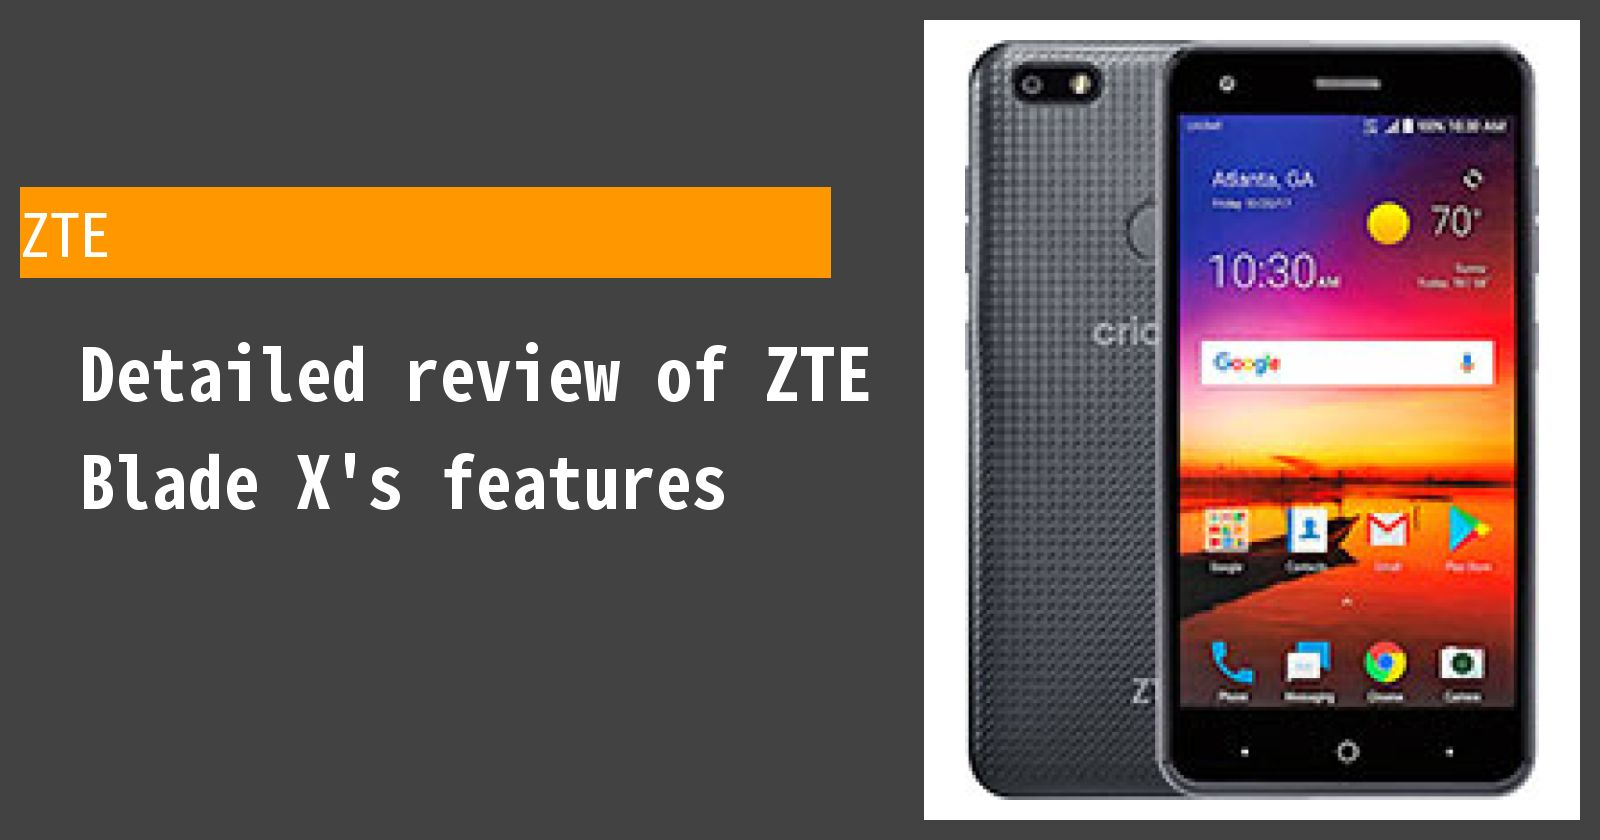 Detailed review of ZTE Blade X's features